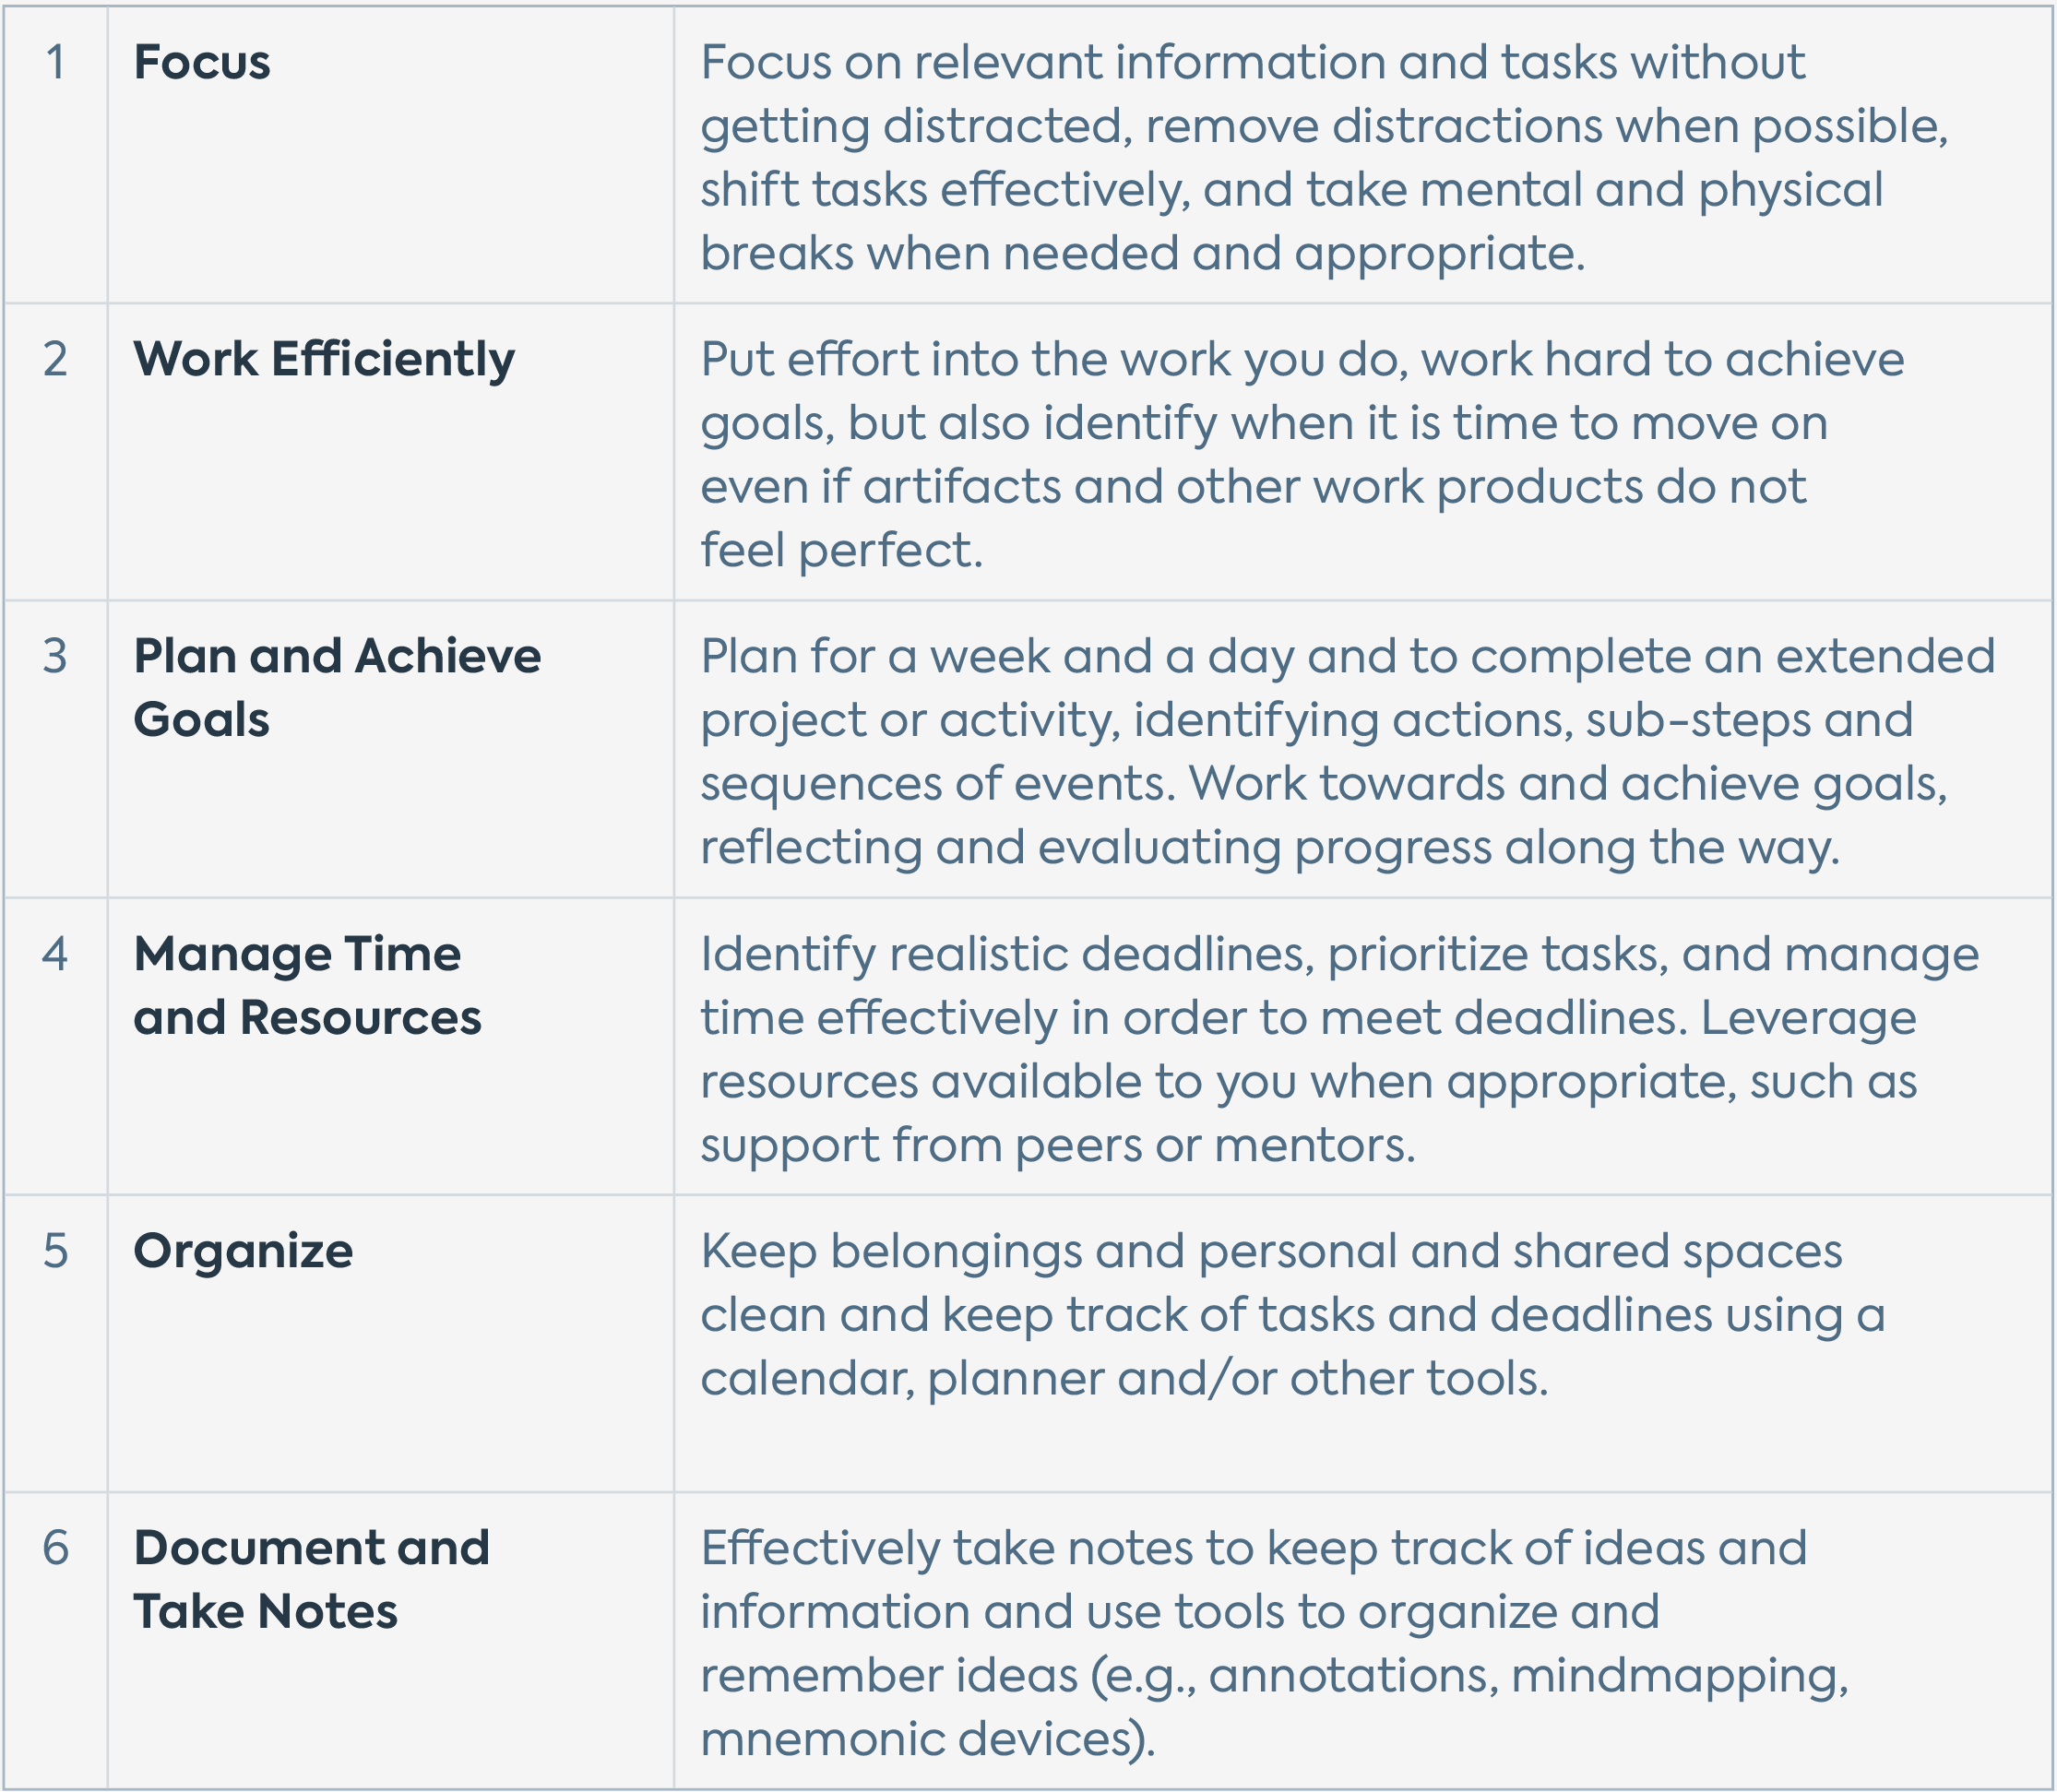 A table featuring the six Quest Forward Work Skills — Focus, Work Efficiently, Plan and Achieve Goals, Manage Time and Resources, Organize, and Document & Take Notes — with brief descriptions of each.